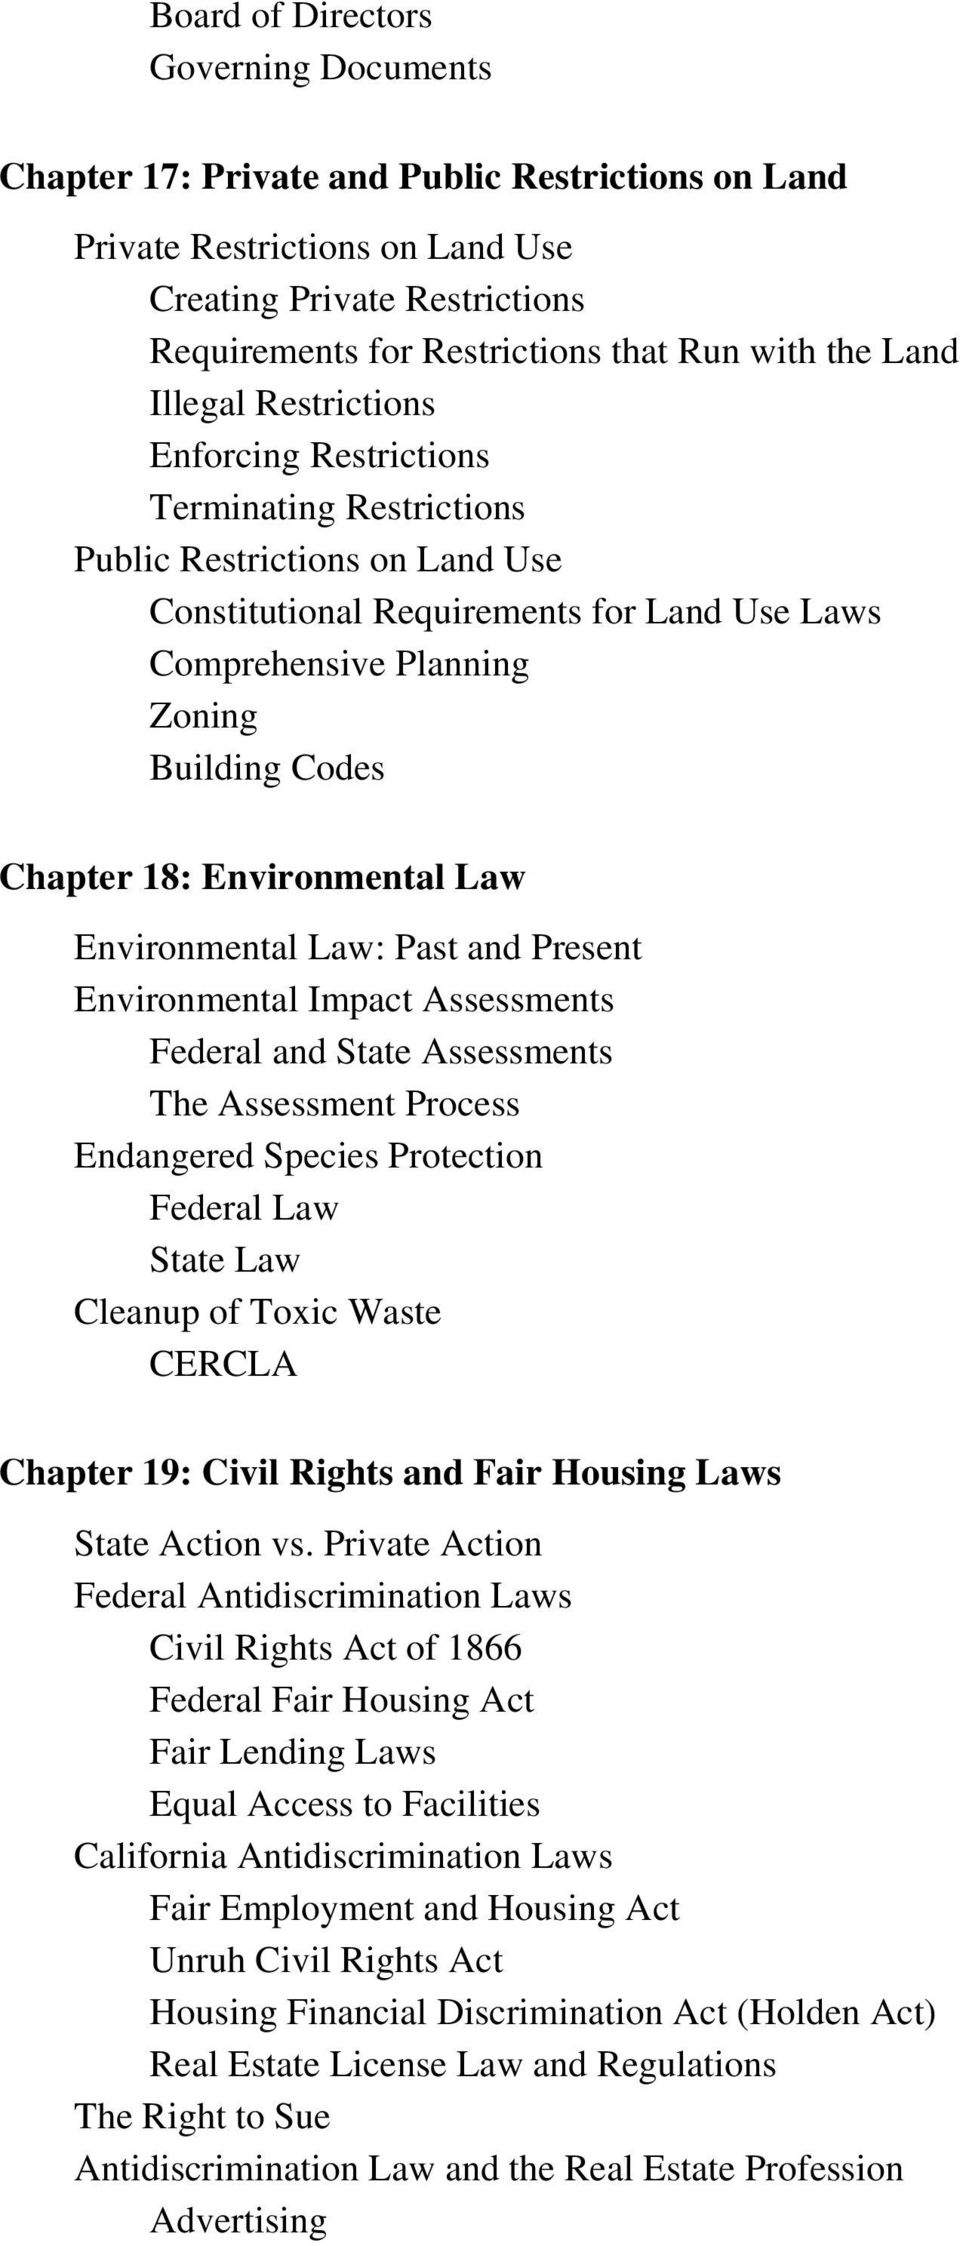 Codes Chapter 18: Environmental Law Environmental Law: Past and Present Environmental Impact Assessments Federal and State Assessments The Assessment Process Endangered Species Protection Federal Law